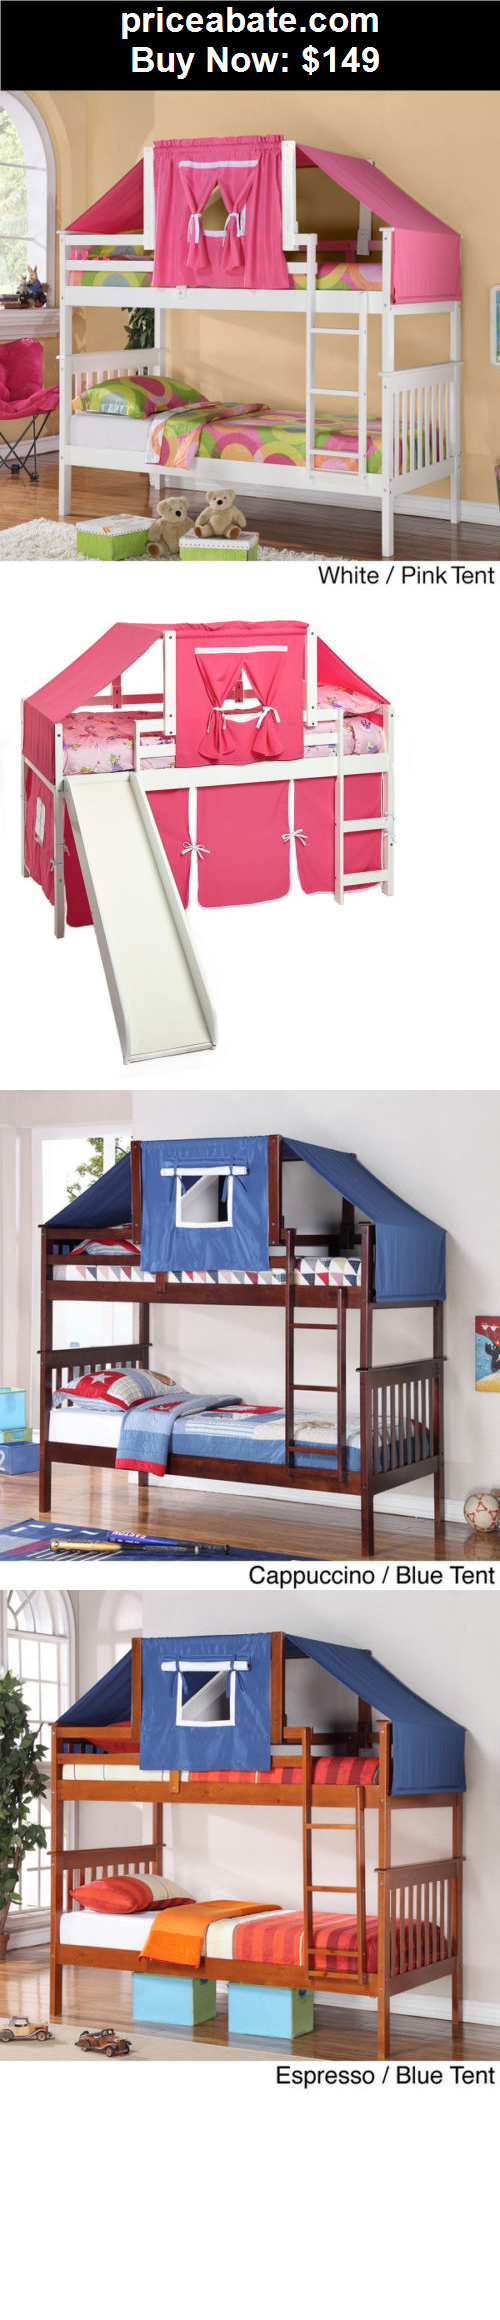 Kids Furniture Bunk Bed Tent Kit